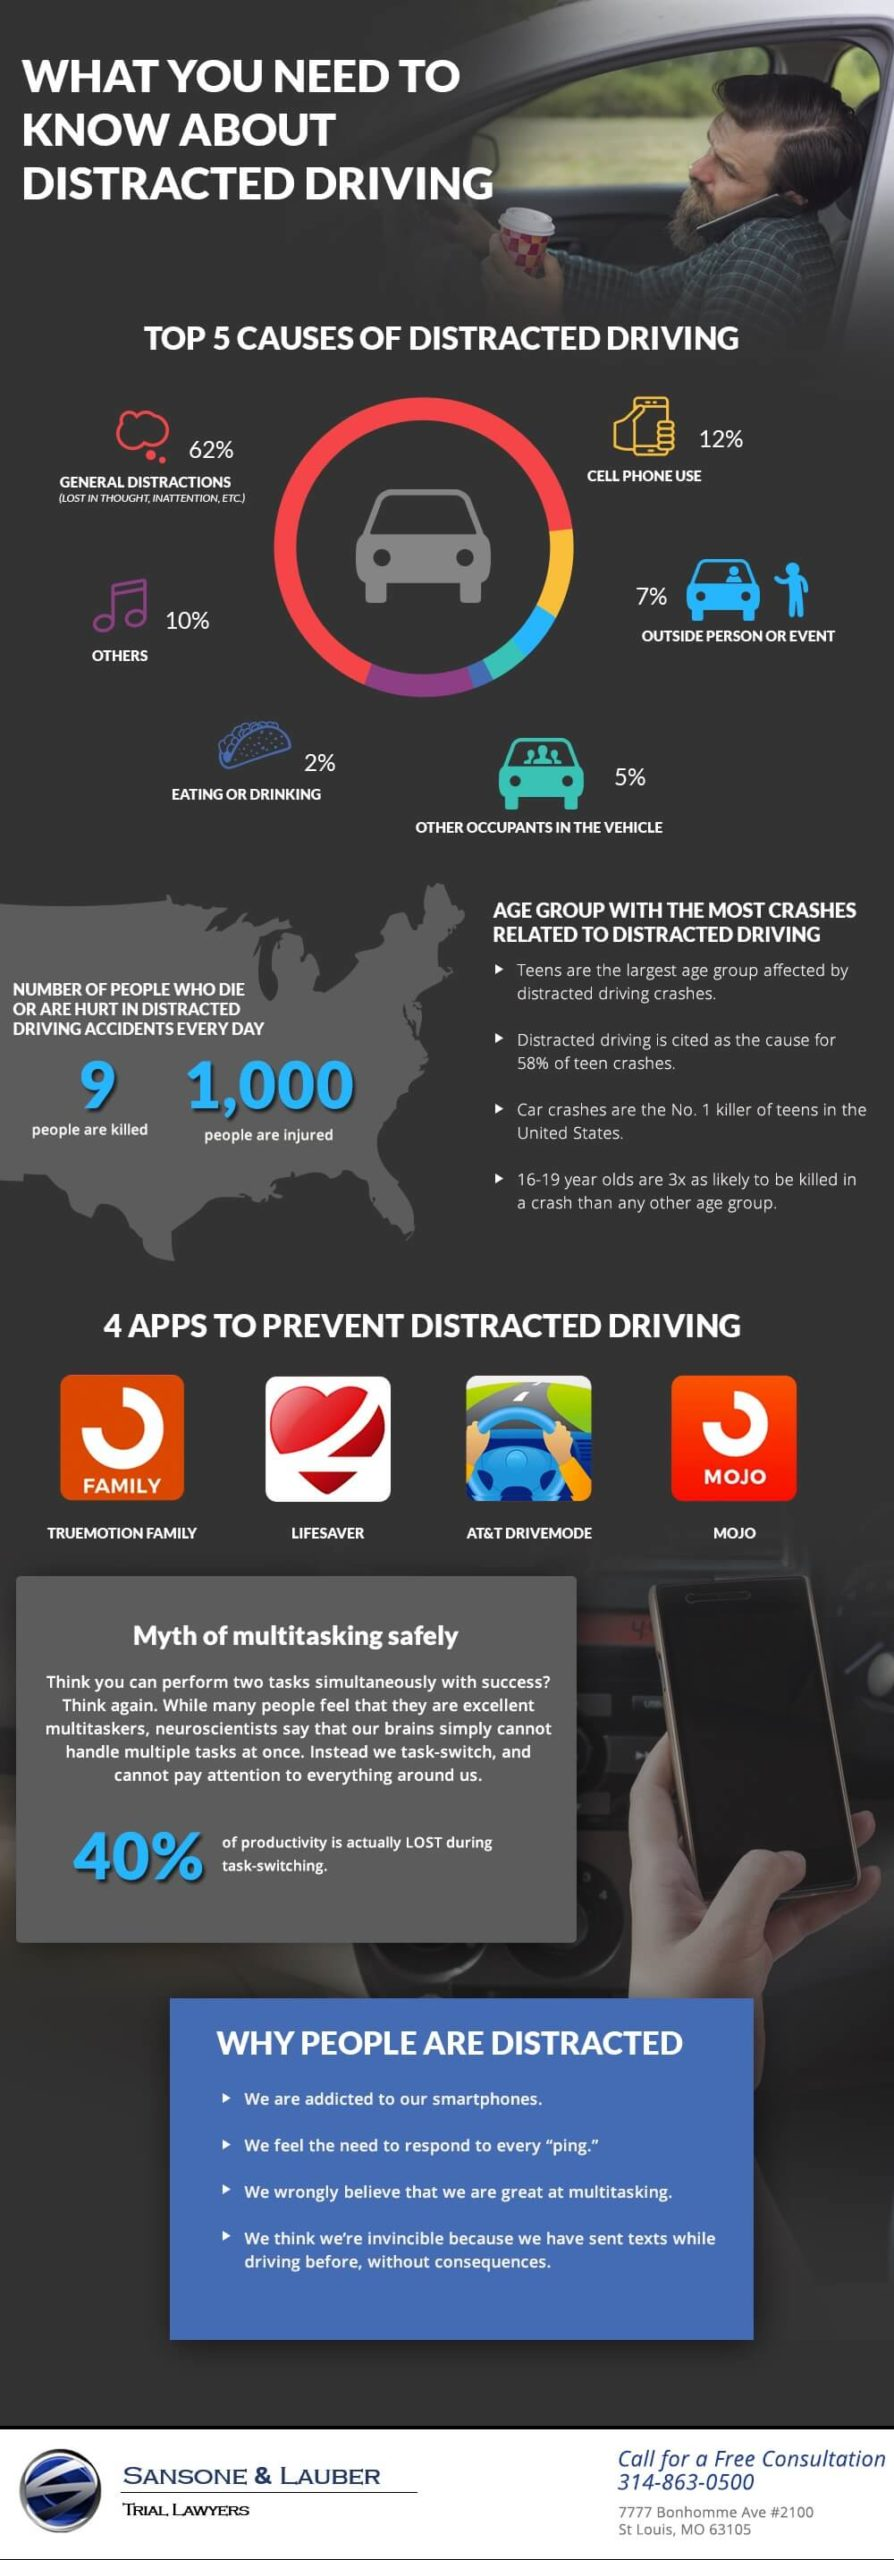 How-Distracted-Driving-Can-Change-Our-Lives-1